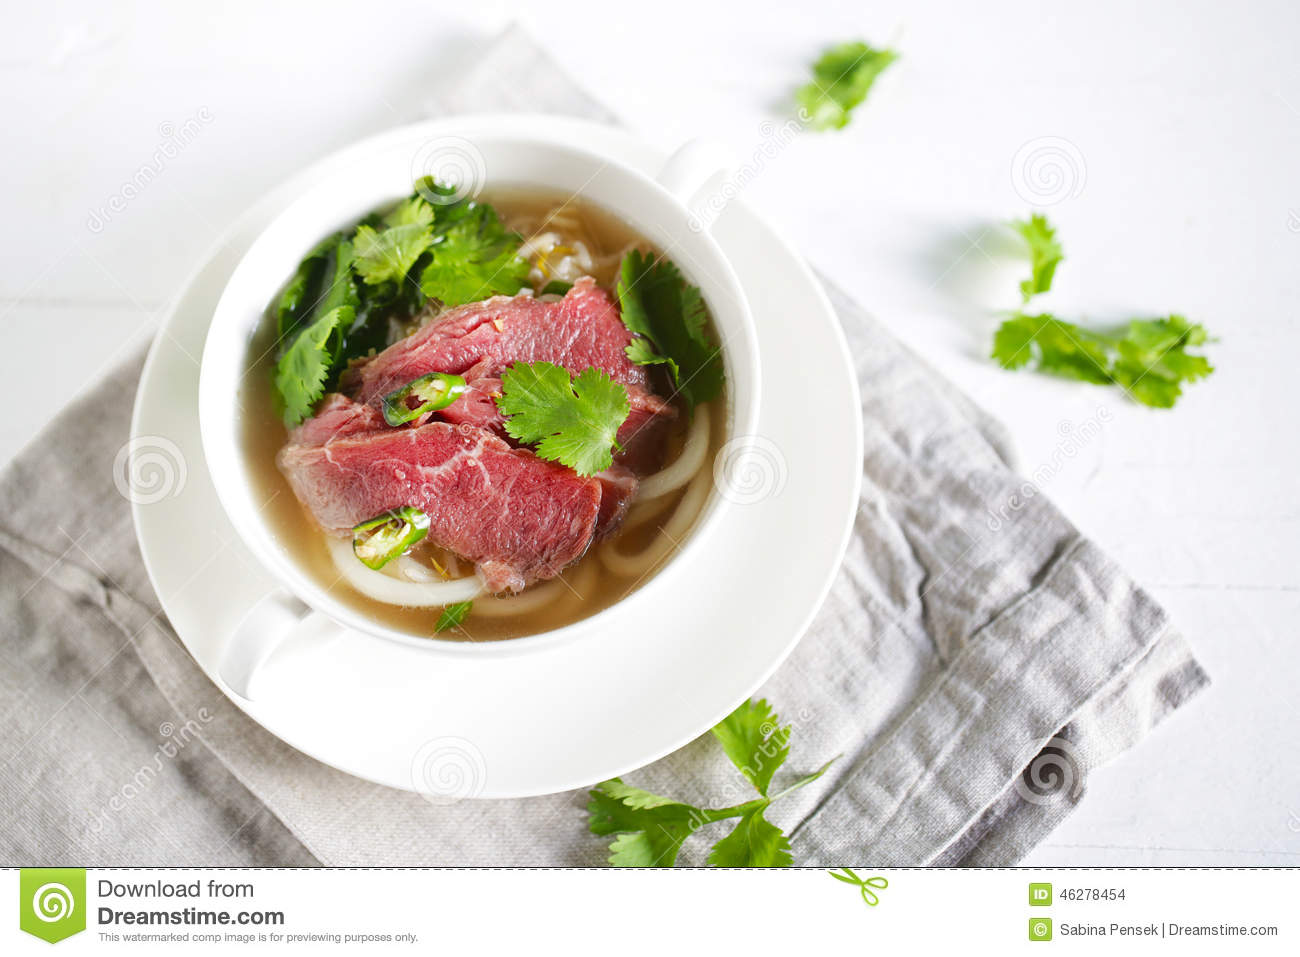 Beef Noodle Soup With Noodles, Pho From Vietnam With Coriander.